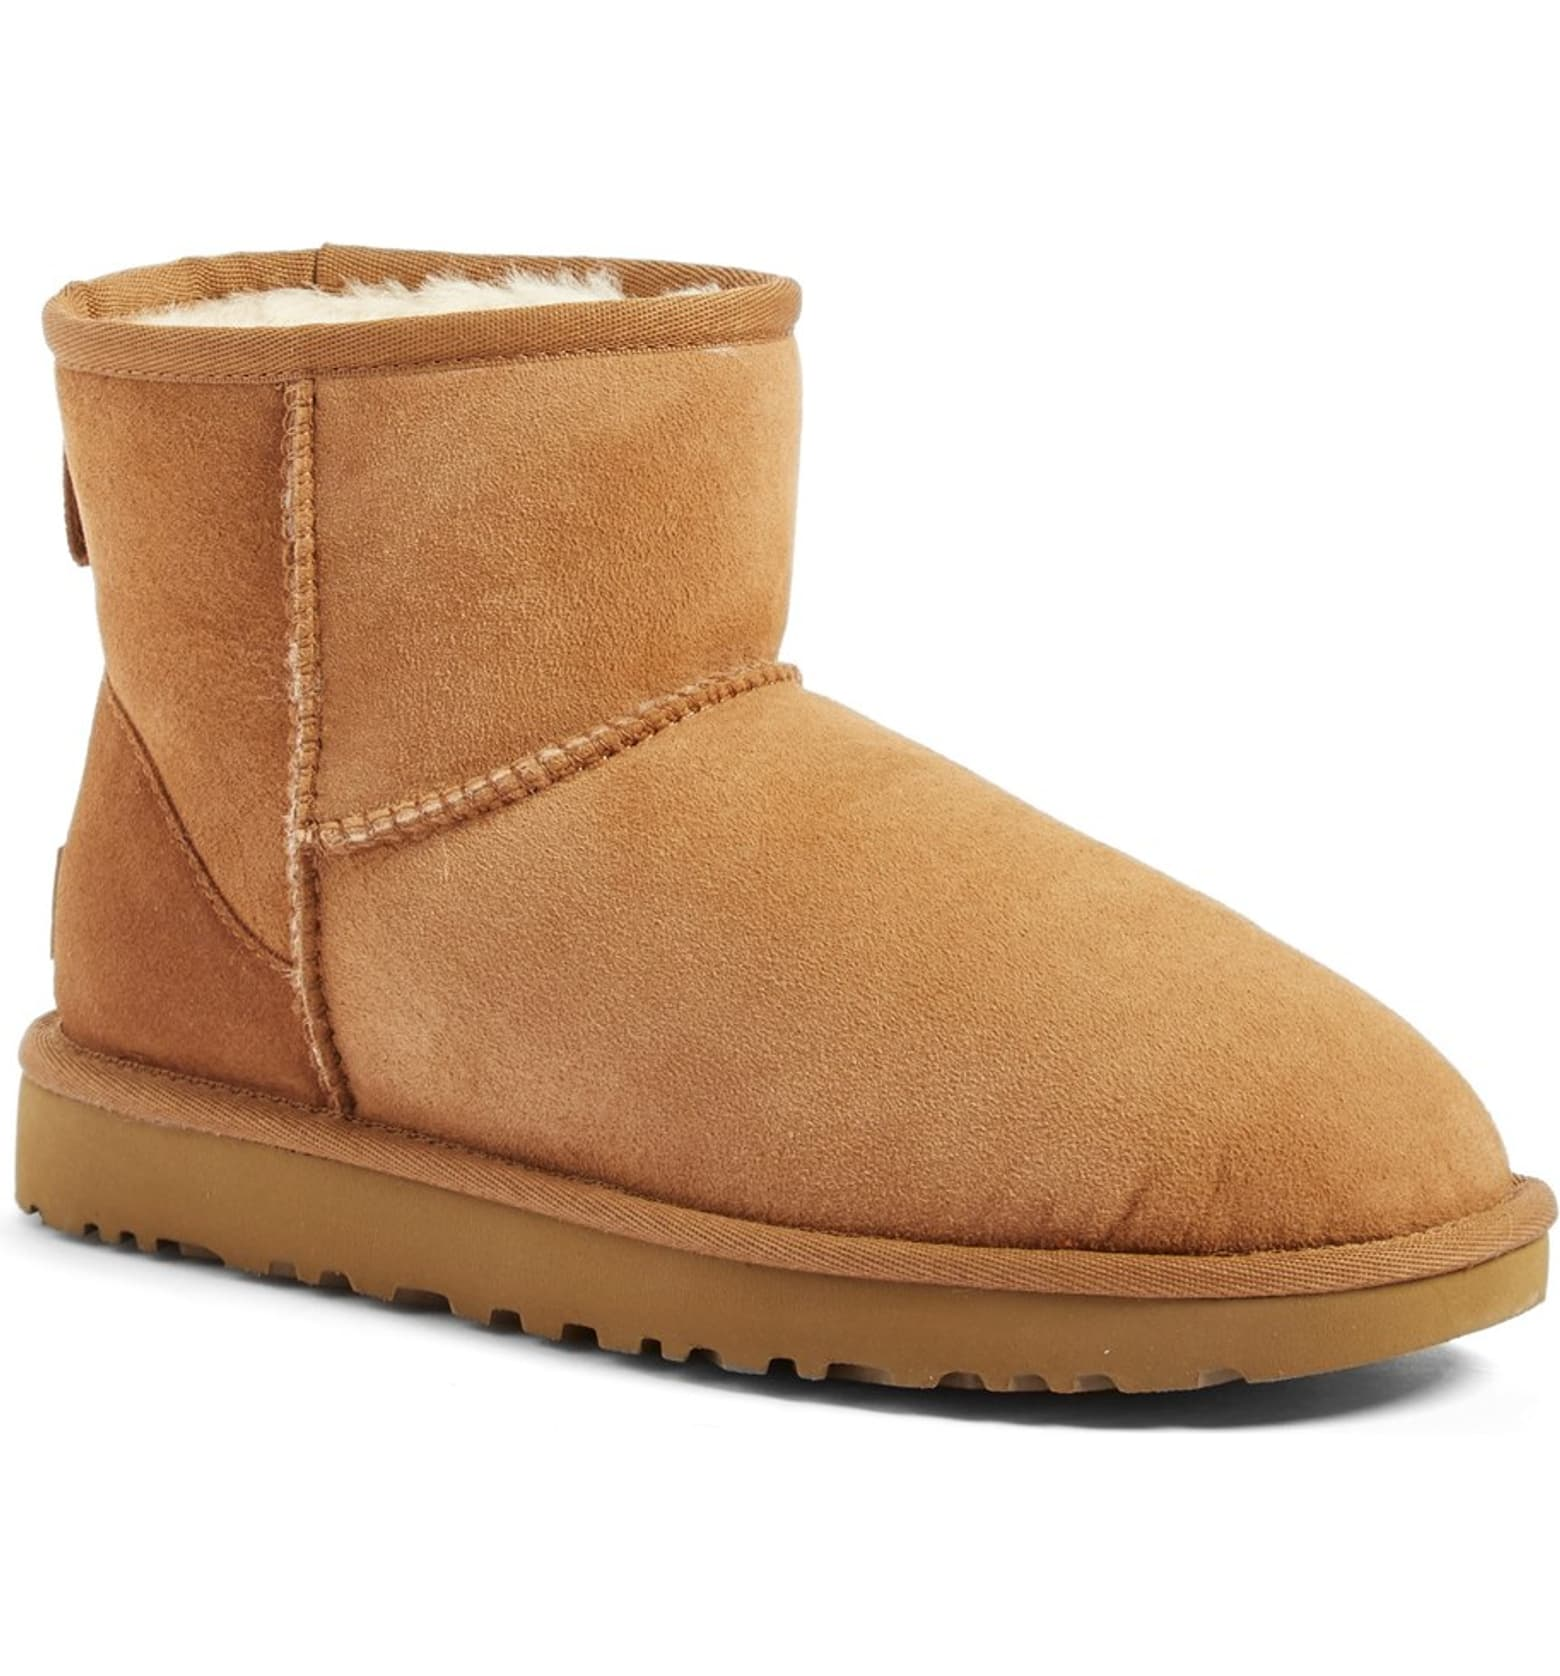 Classic Mini II Genuine Shearling Lined Boot by Ugg, available on nordstrom.com for $139.95 Bella Hadid Shoes Exact Product